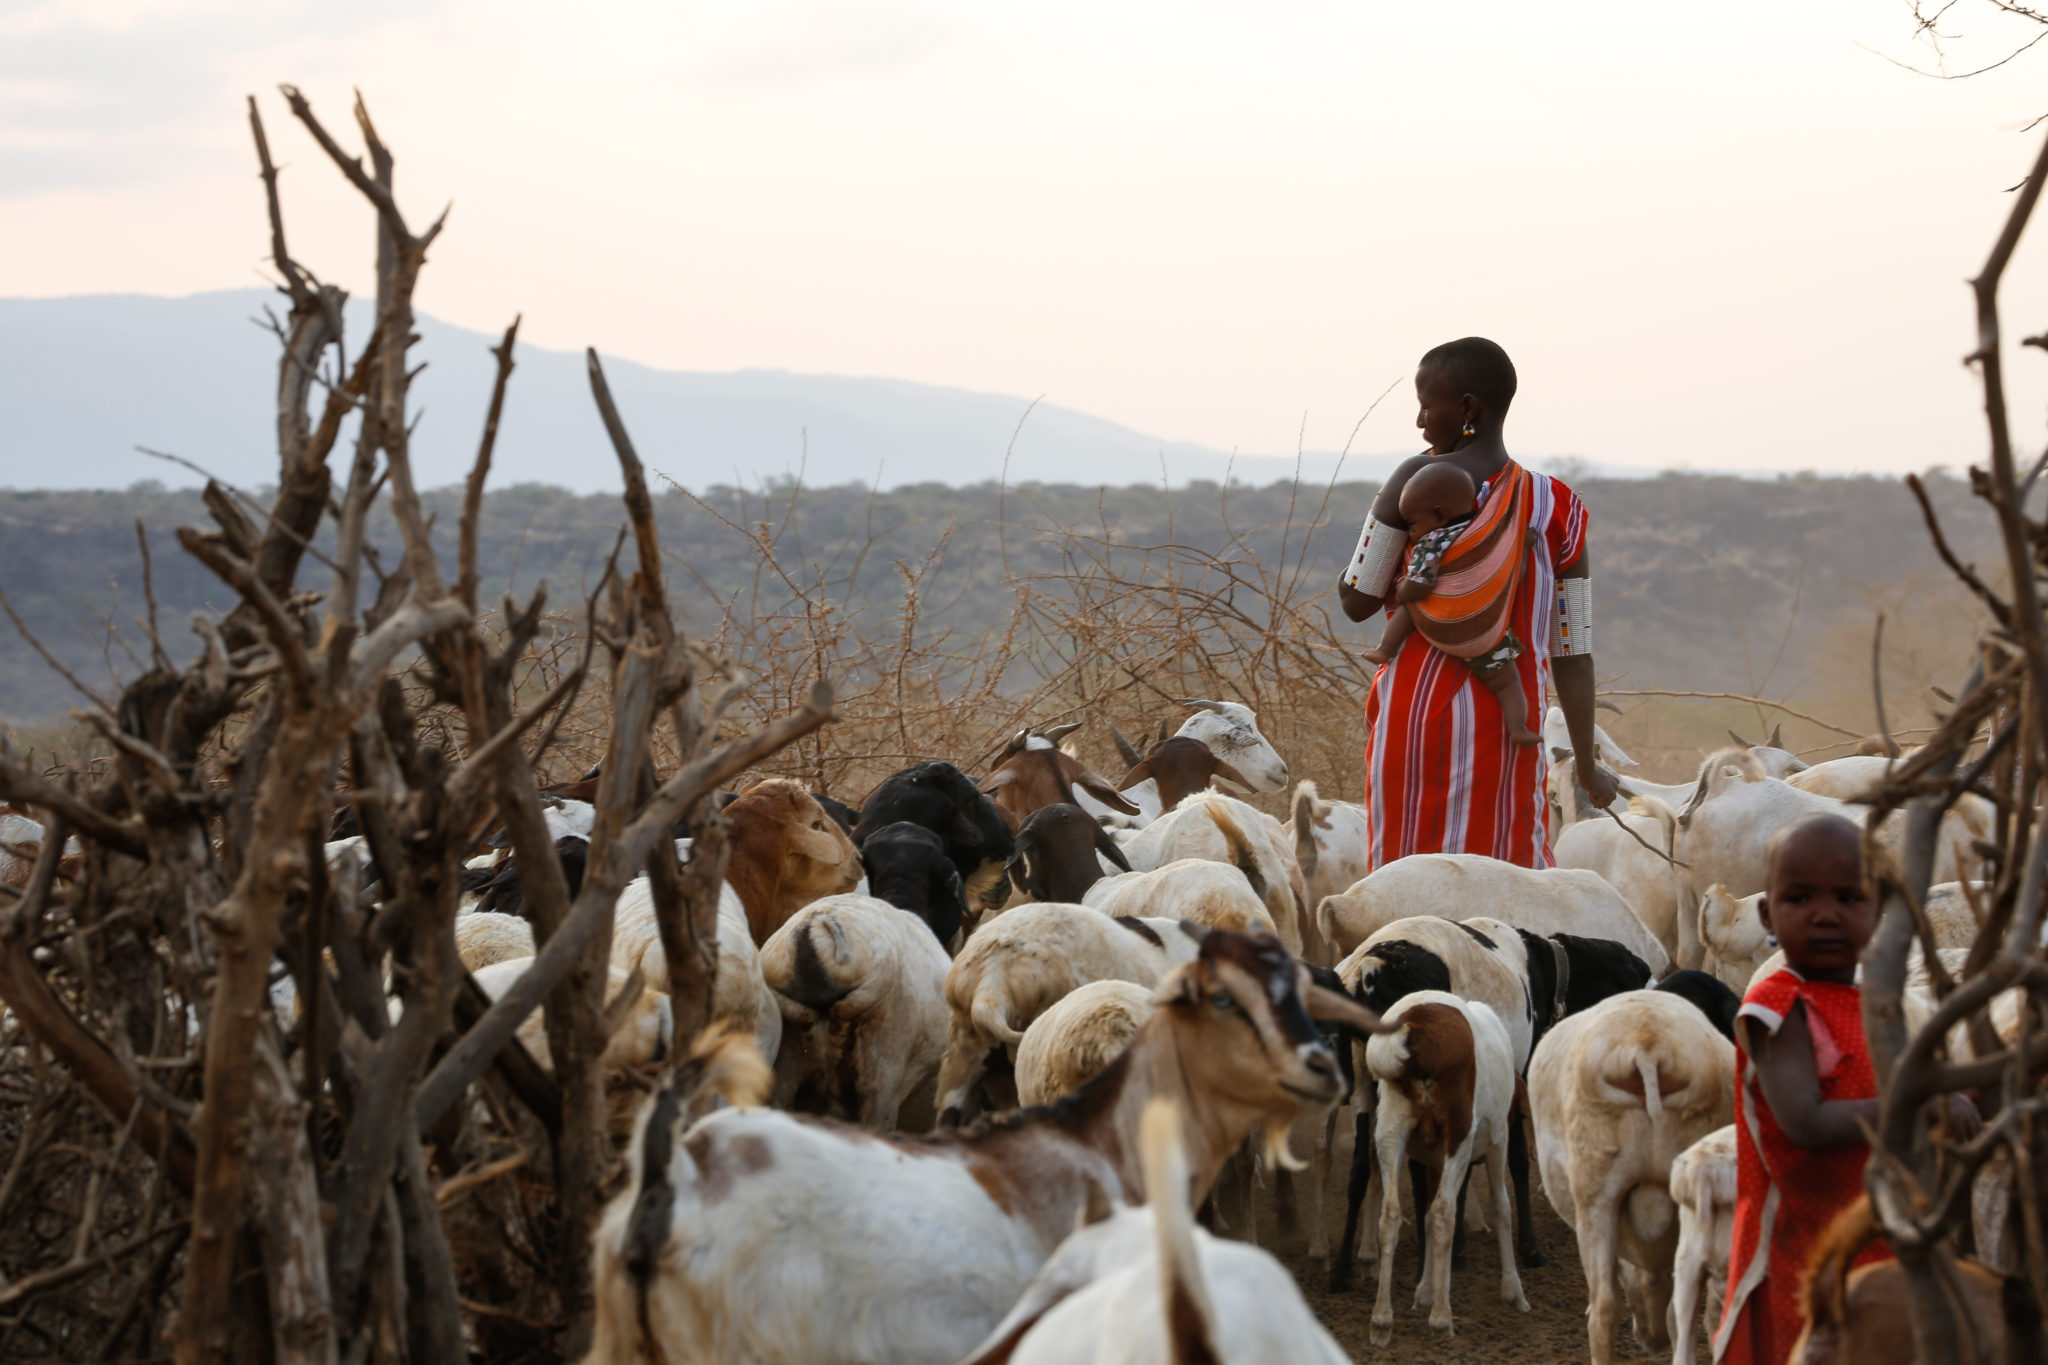 Maasai woman with baby herding goats - Mar Gone Wild